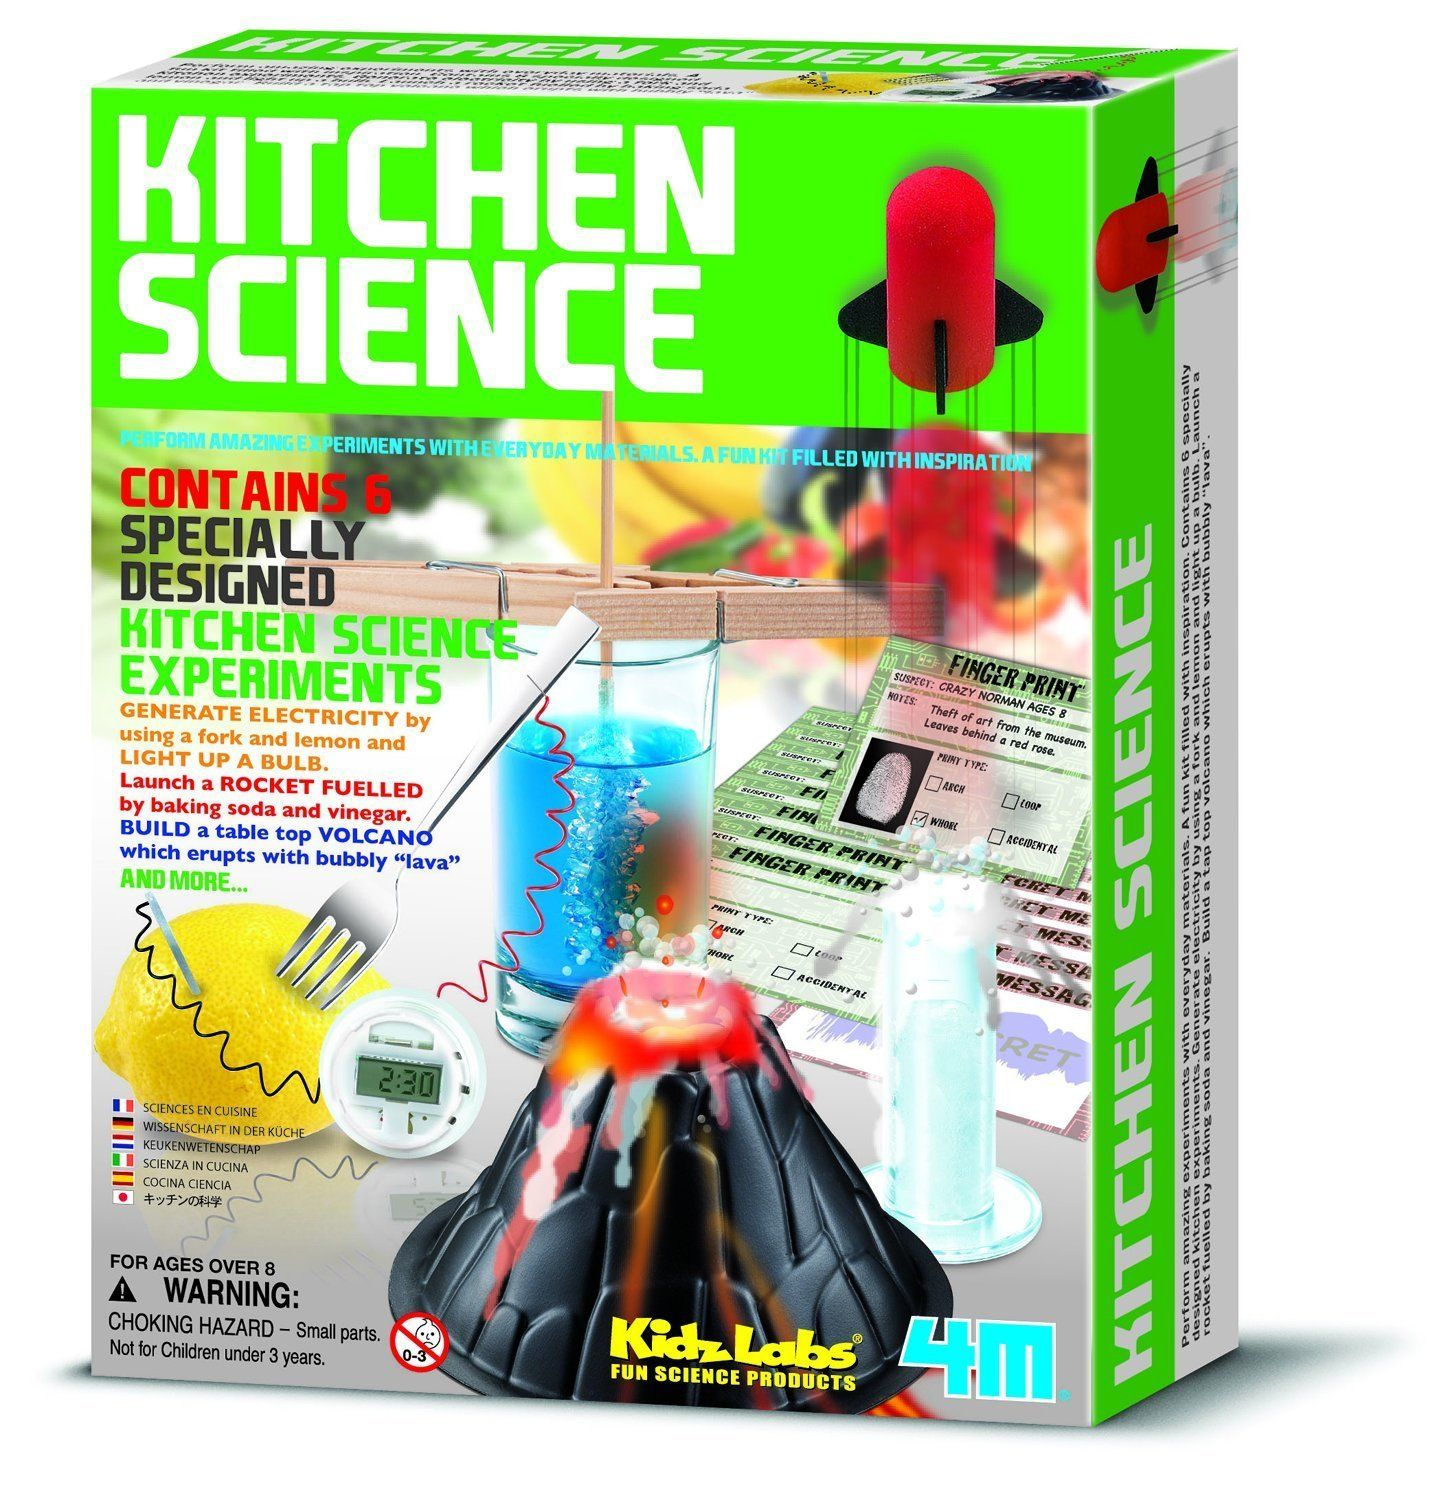 Amazon.com: 4M Kitchen Science Kit: Toys & Games | Kiddos ...